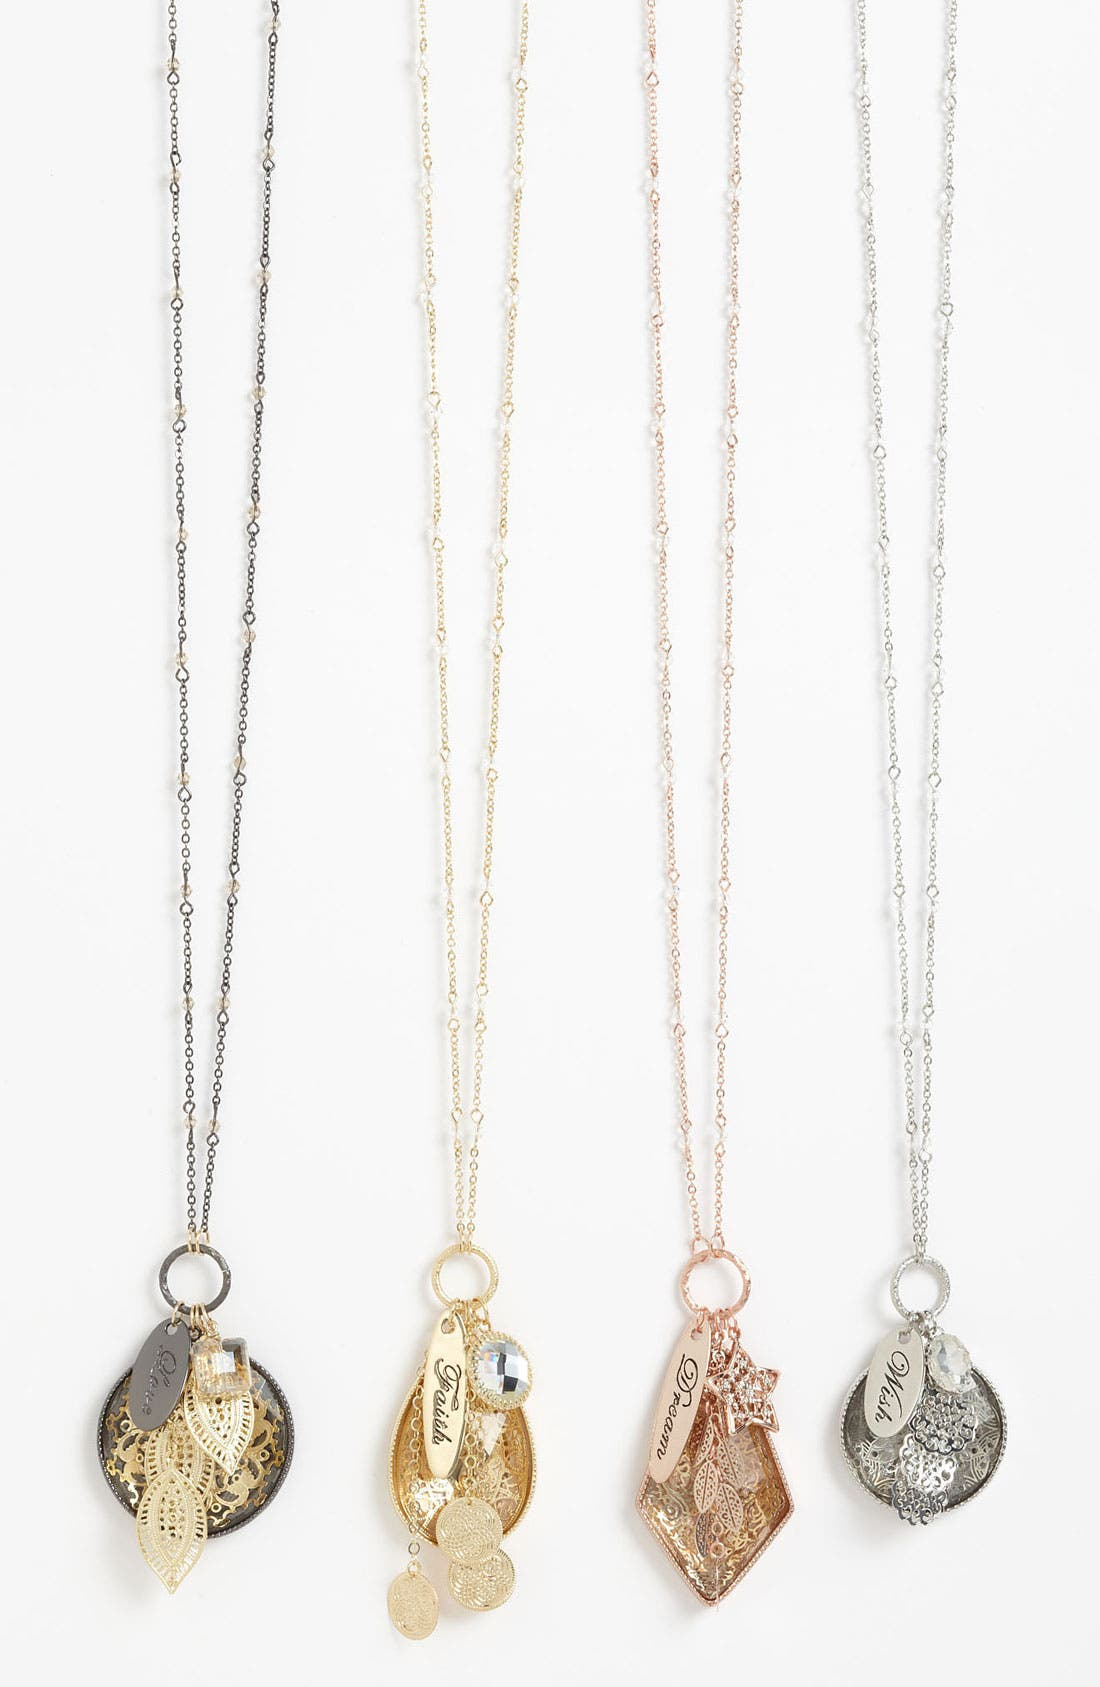 Main Image - Nordstrom 'Tinseltown' Long Cluster Pendant Necklace